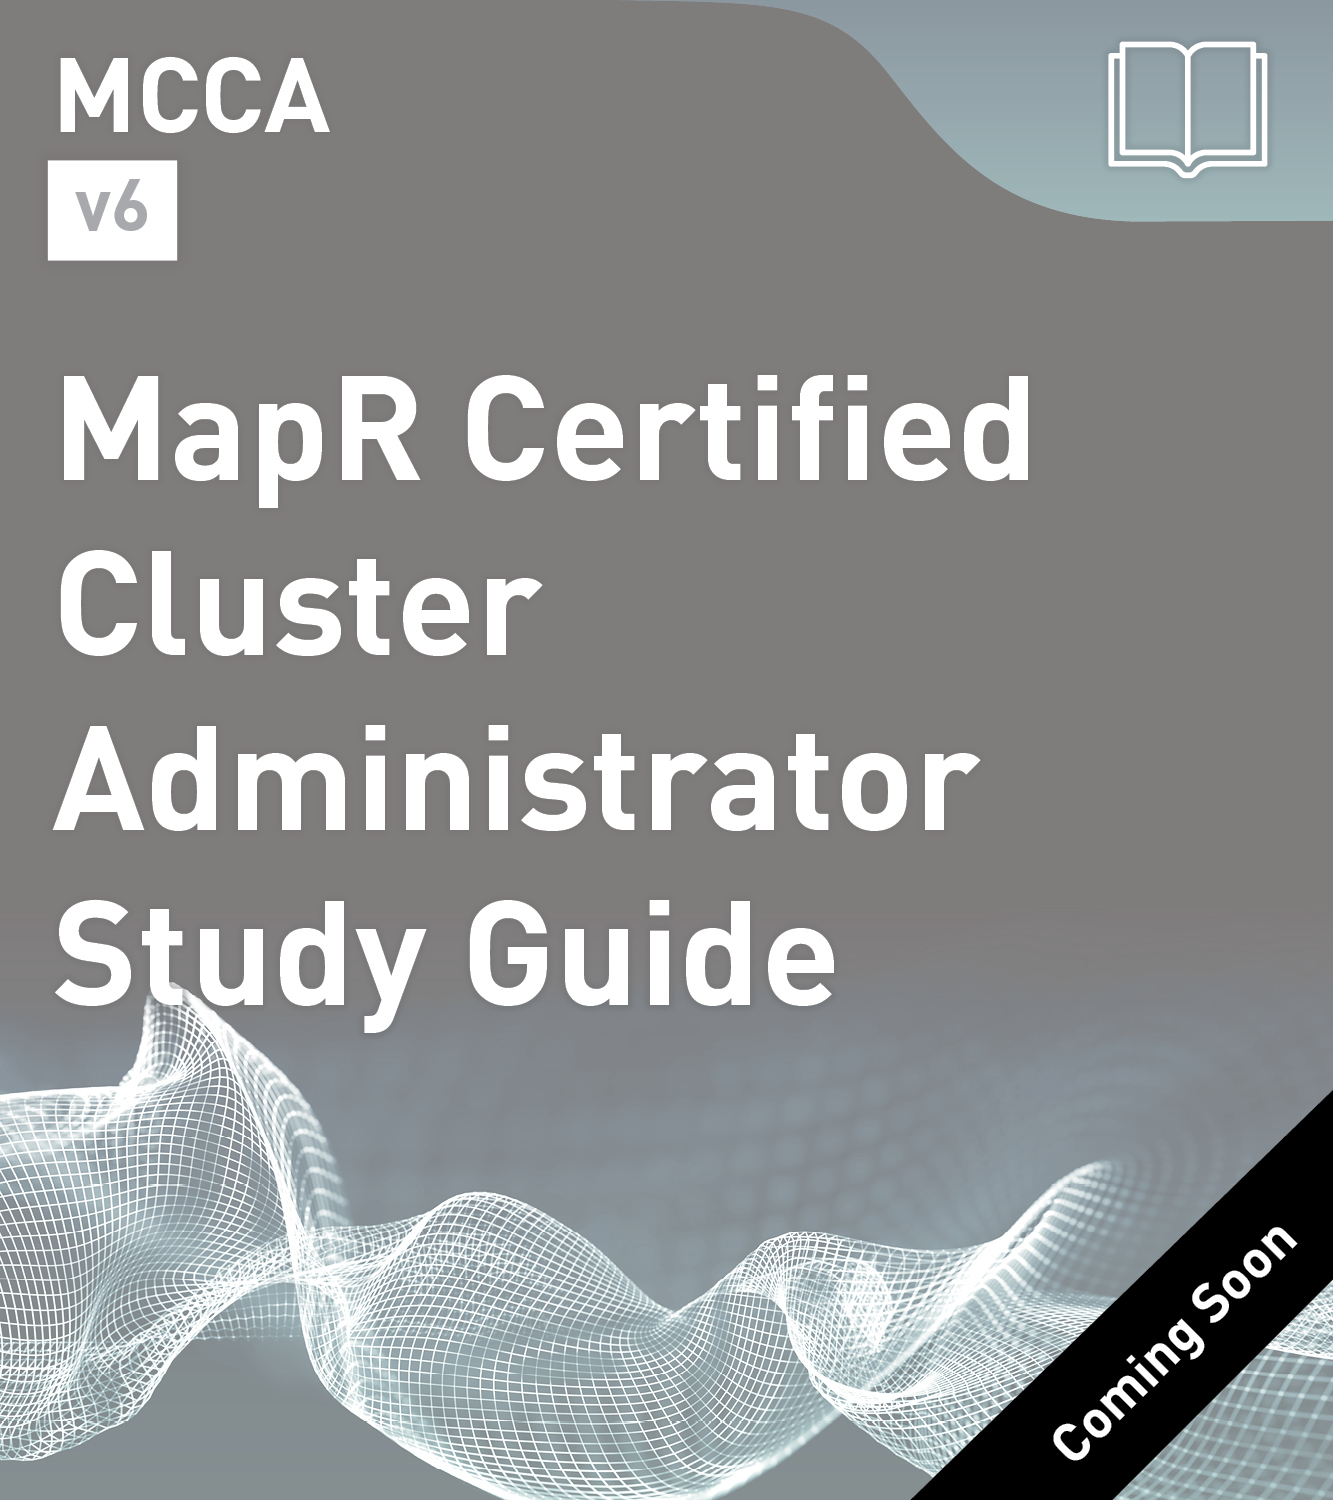 MCCA Study Guide - MapR Certified Cluster Administrator (v6)